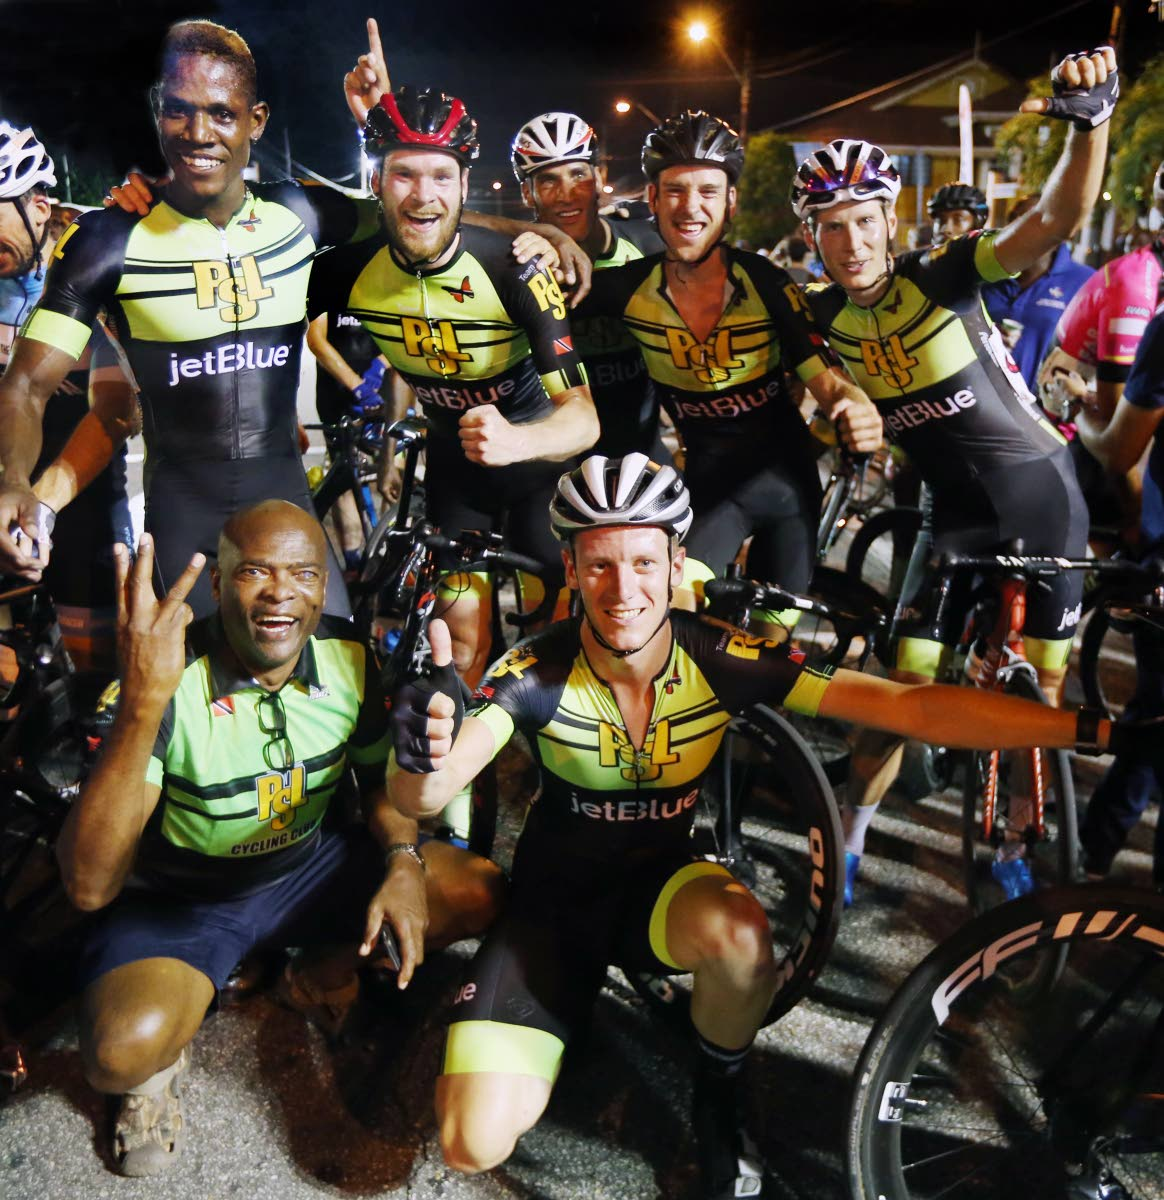 Members of the Team PSL after competing at the Beacon Cycling on the Avenue event on Wednesday night.